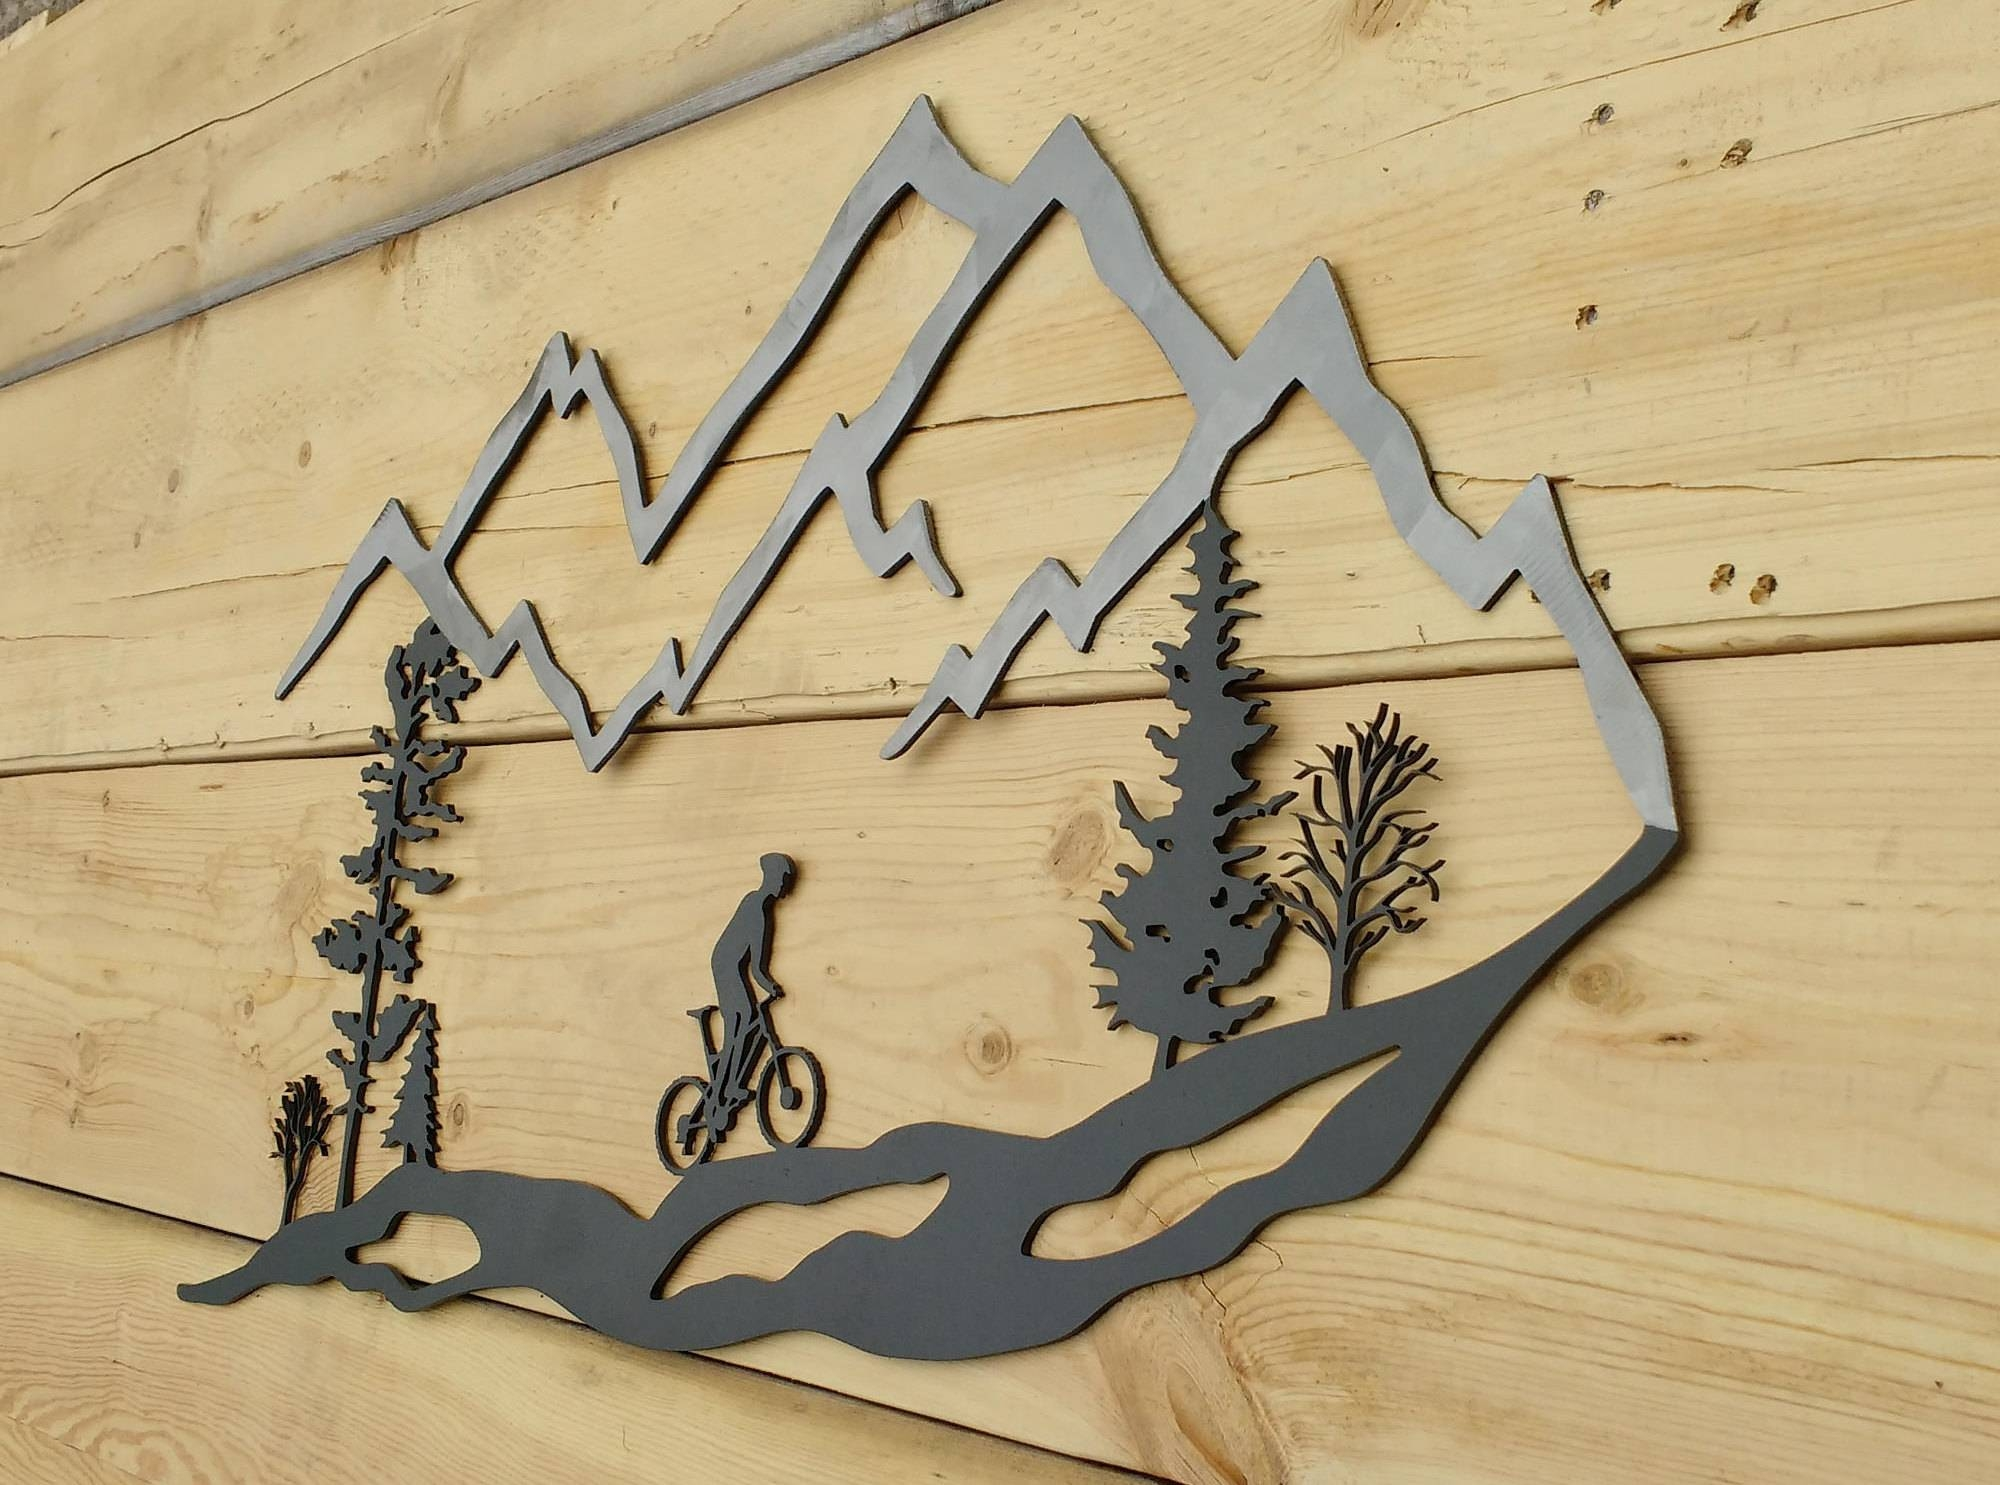 Metal Wall Art Mountain Bike Trees Mountain Bike Mtb Intended For Best And Newest Mountains Metal Wall Art (View 6 of 20)